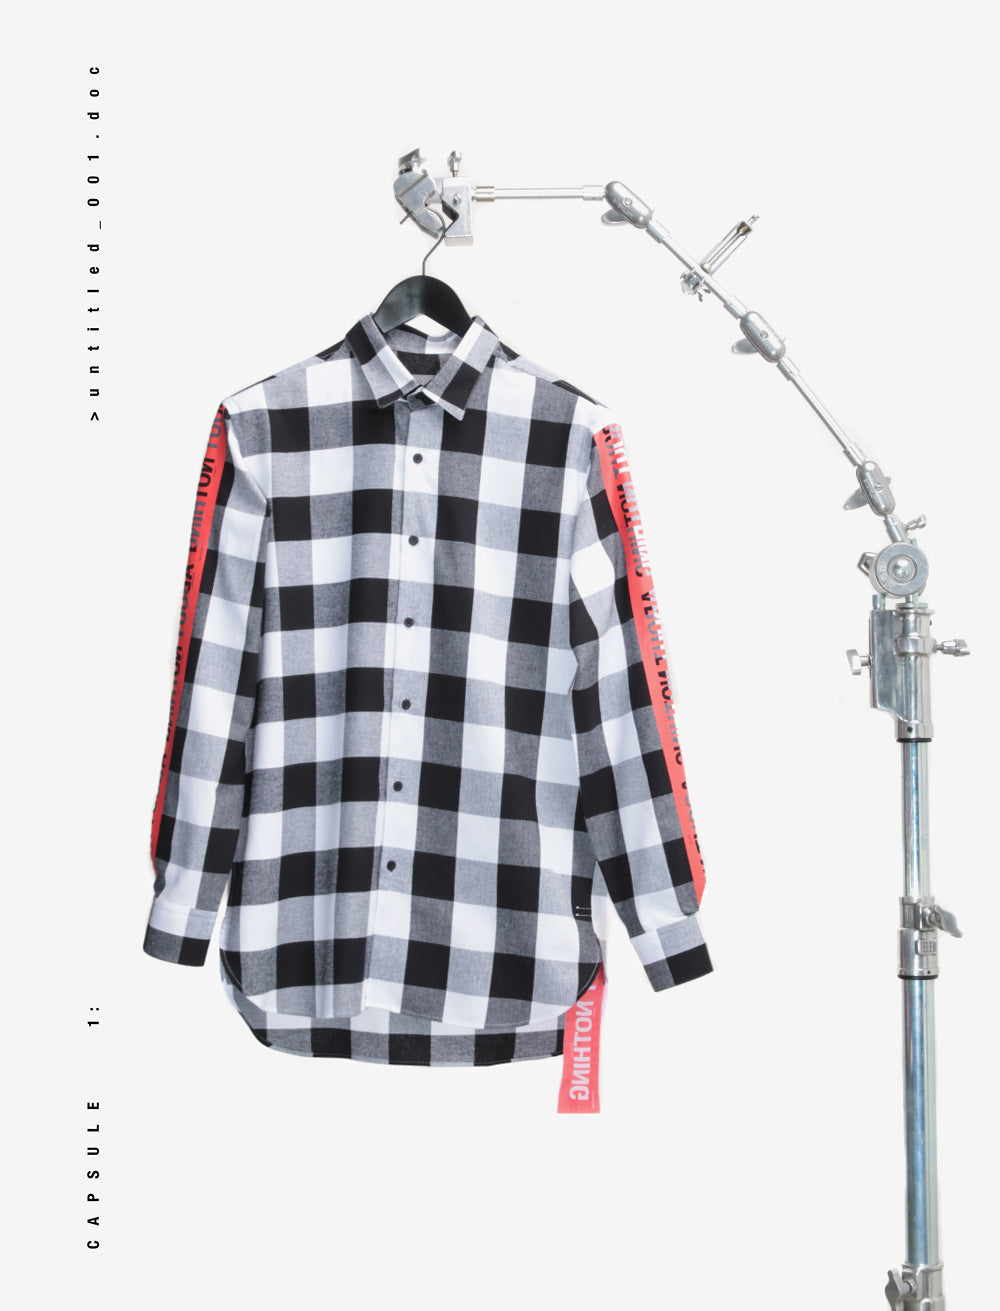 EYES BACK FLANNEL SHIRT / RED TAPE SLEEVE